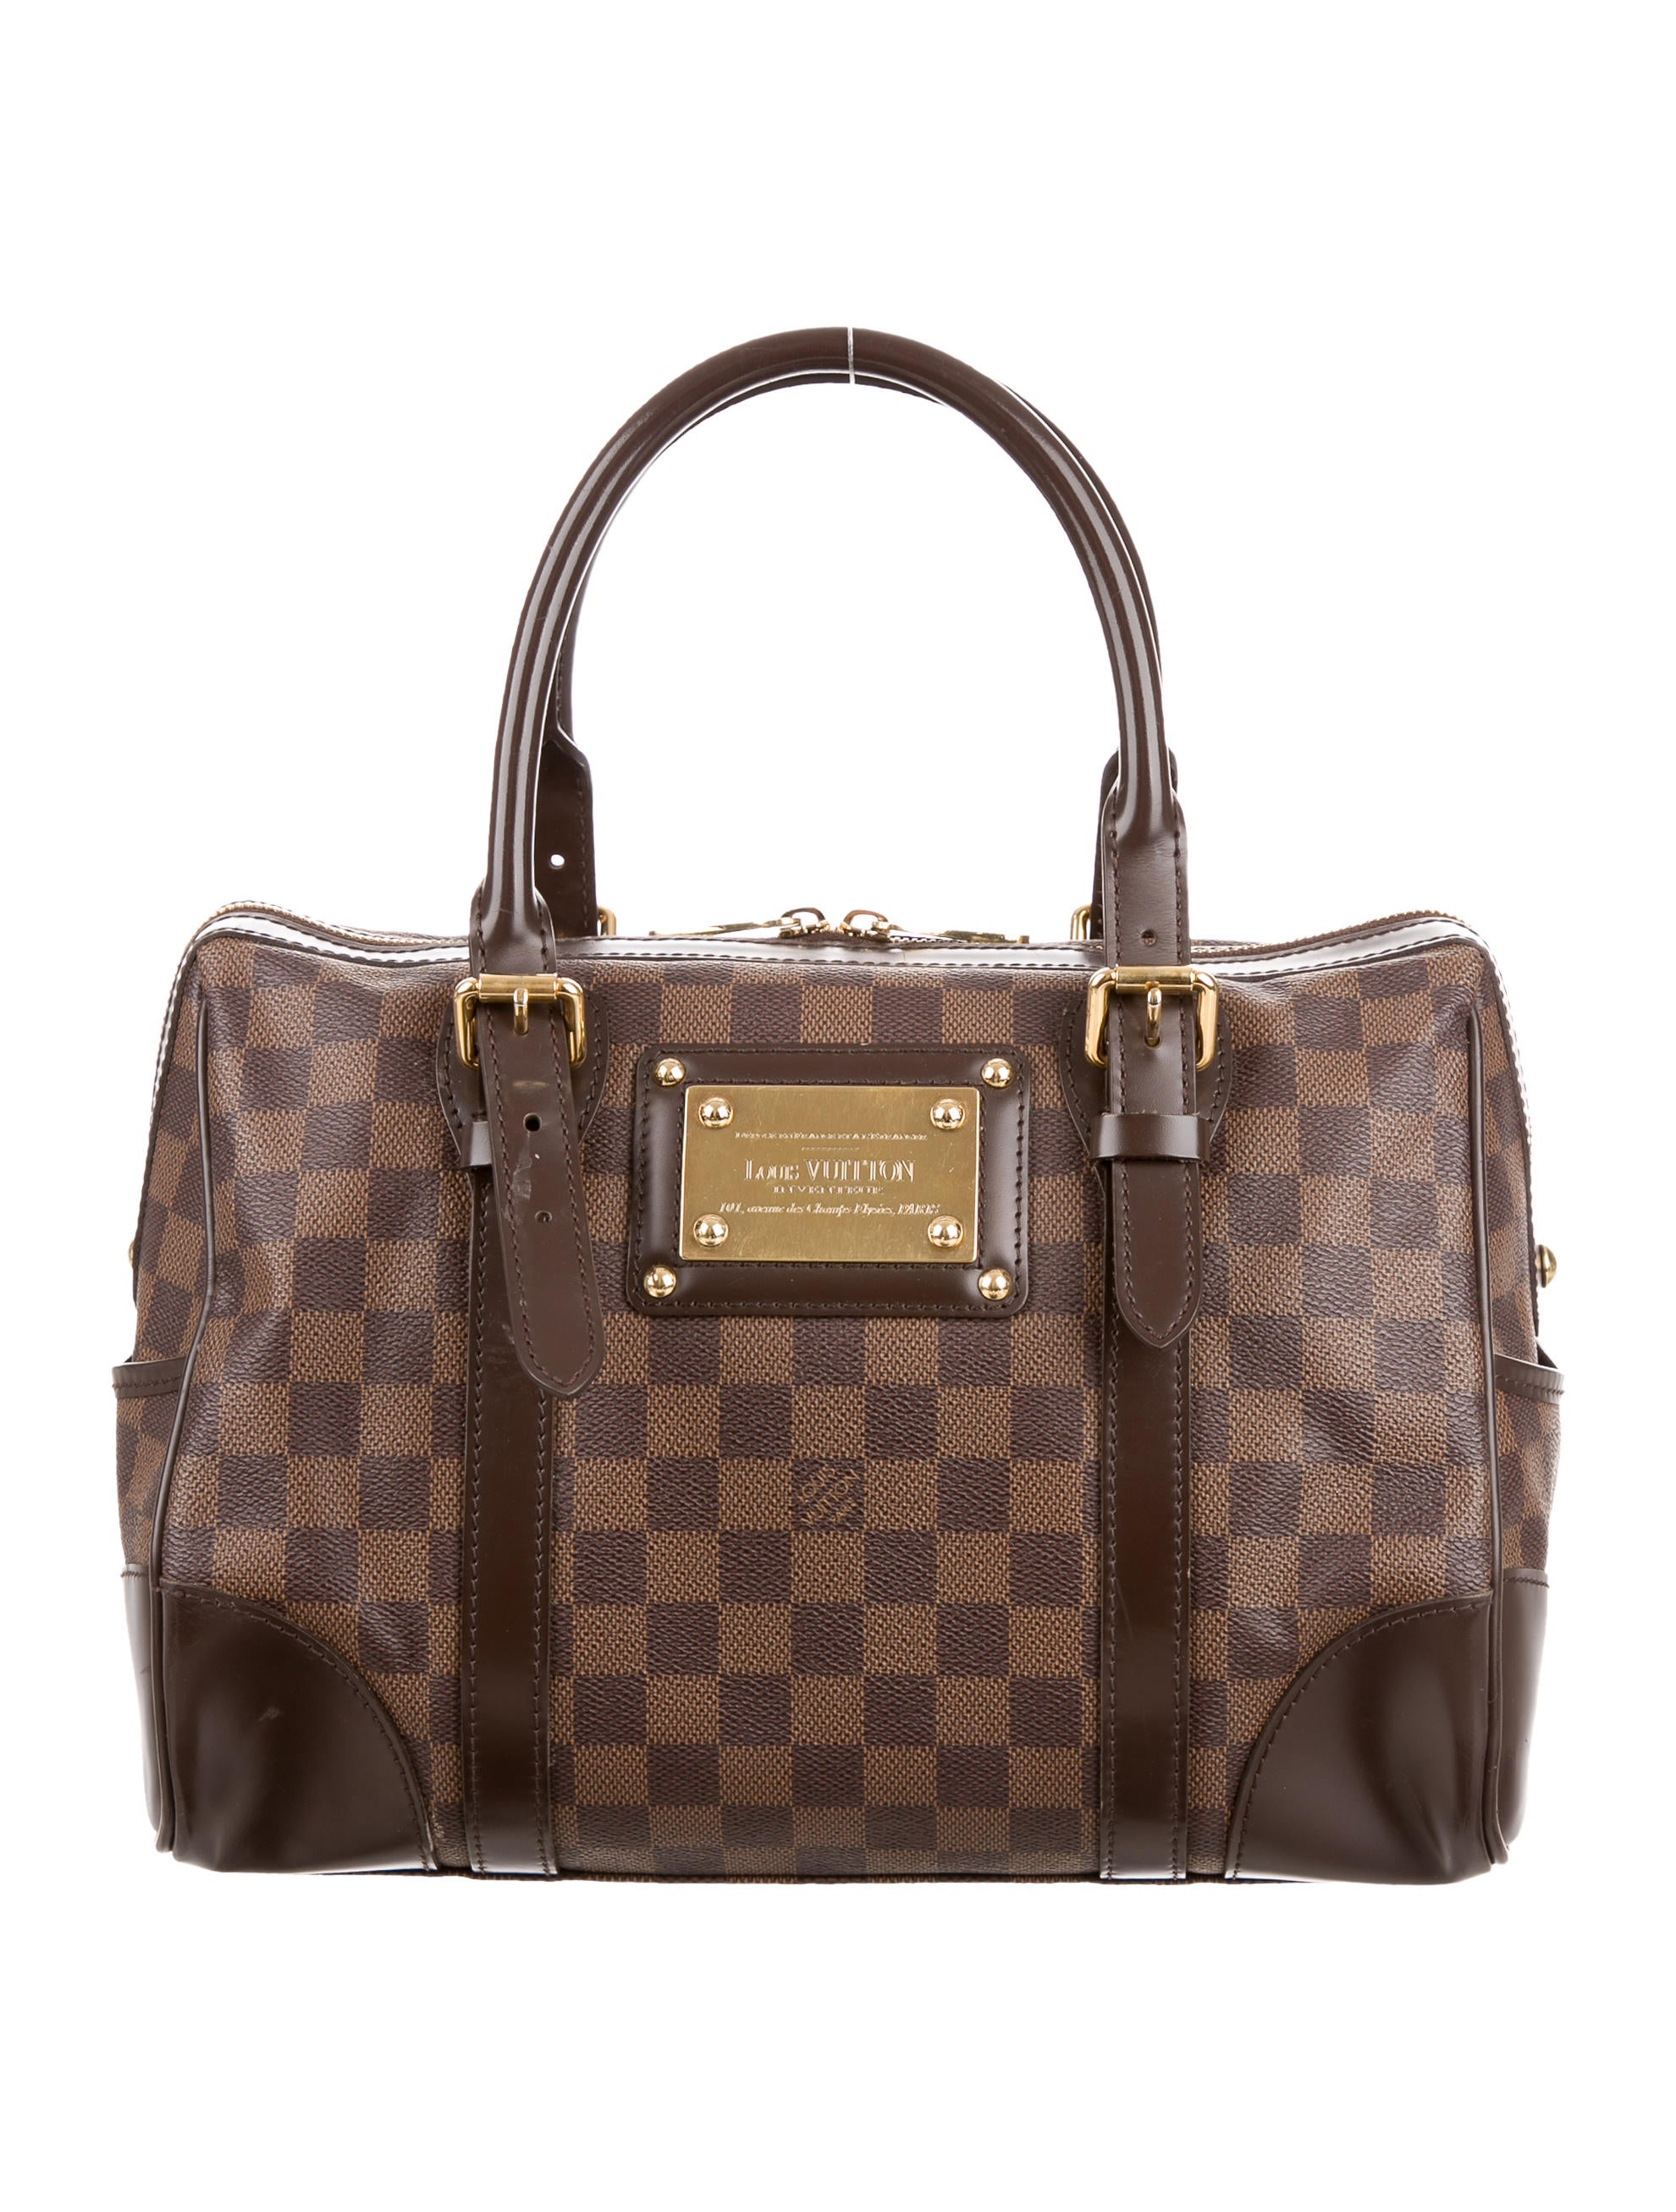 louis vuitton damier ebene berkeley bag handbags. Black Bedroom Furniture Sets. Home Design Ideas